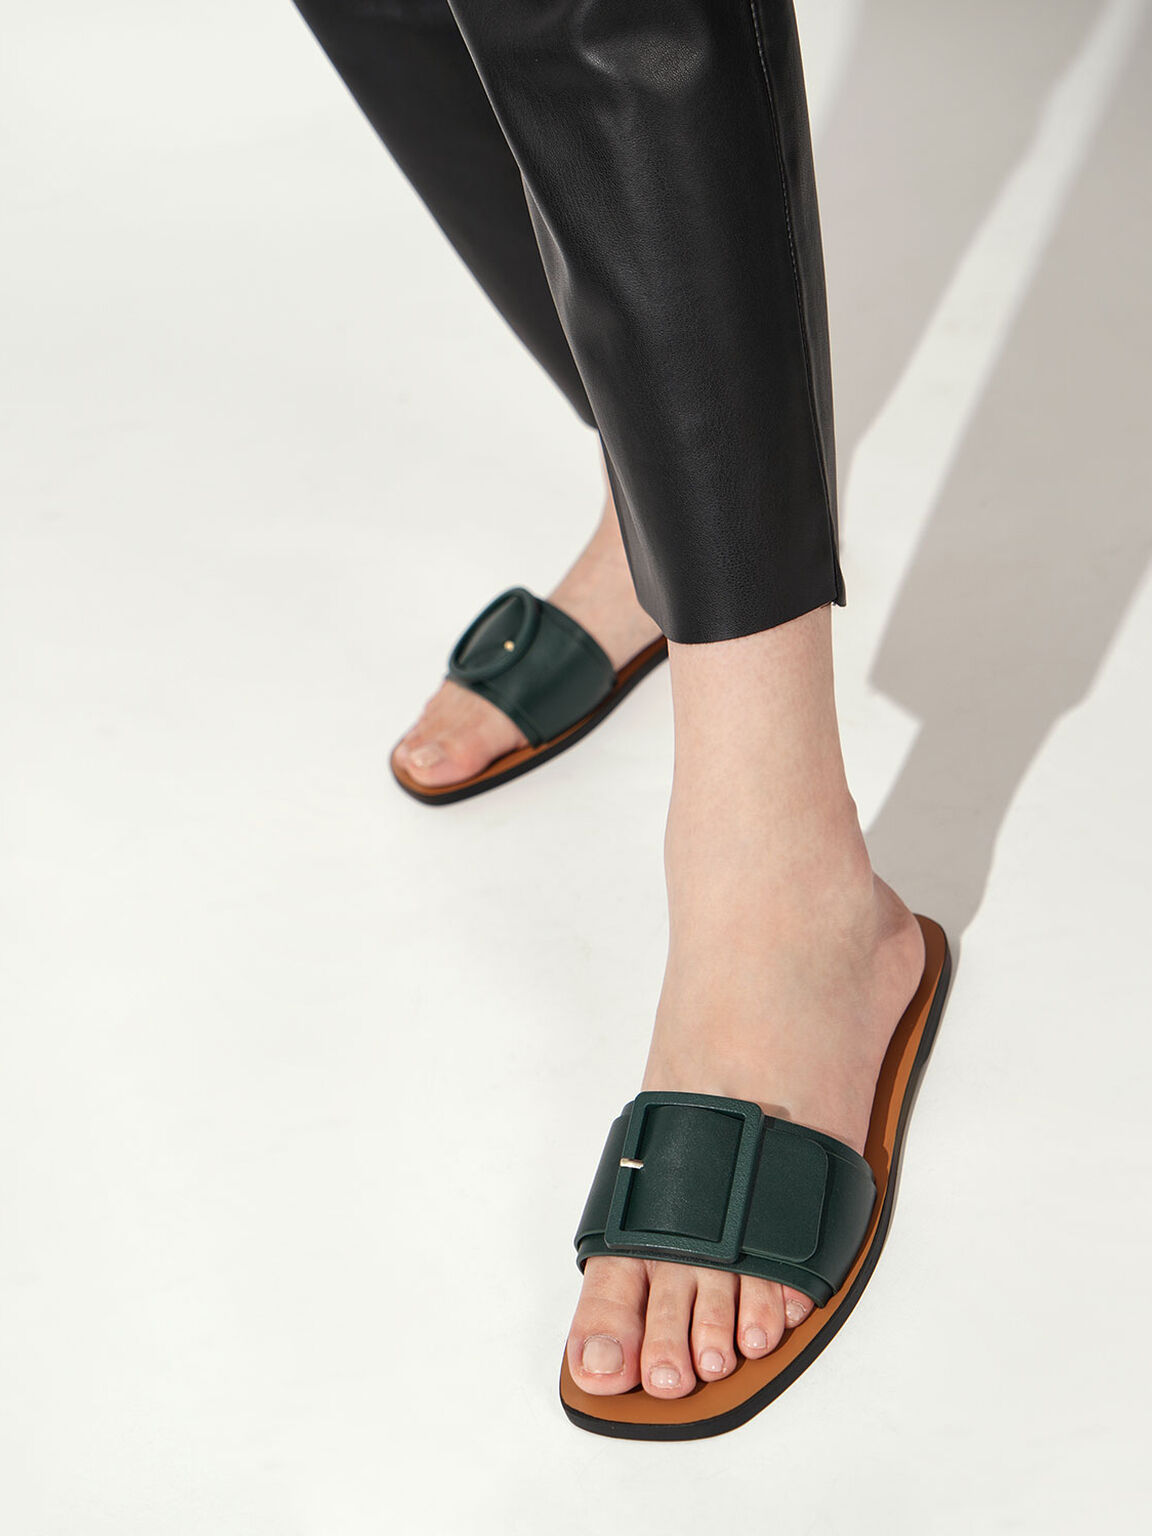 Buckle Strap Slide Sandals, Dark Green, hi-res